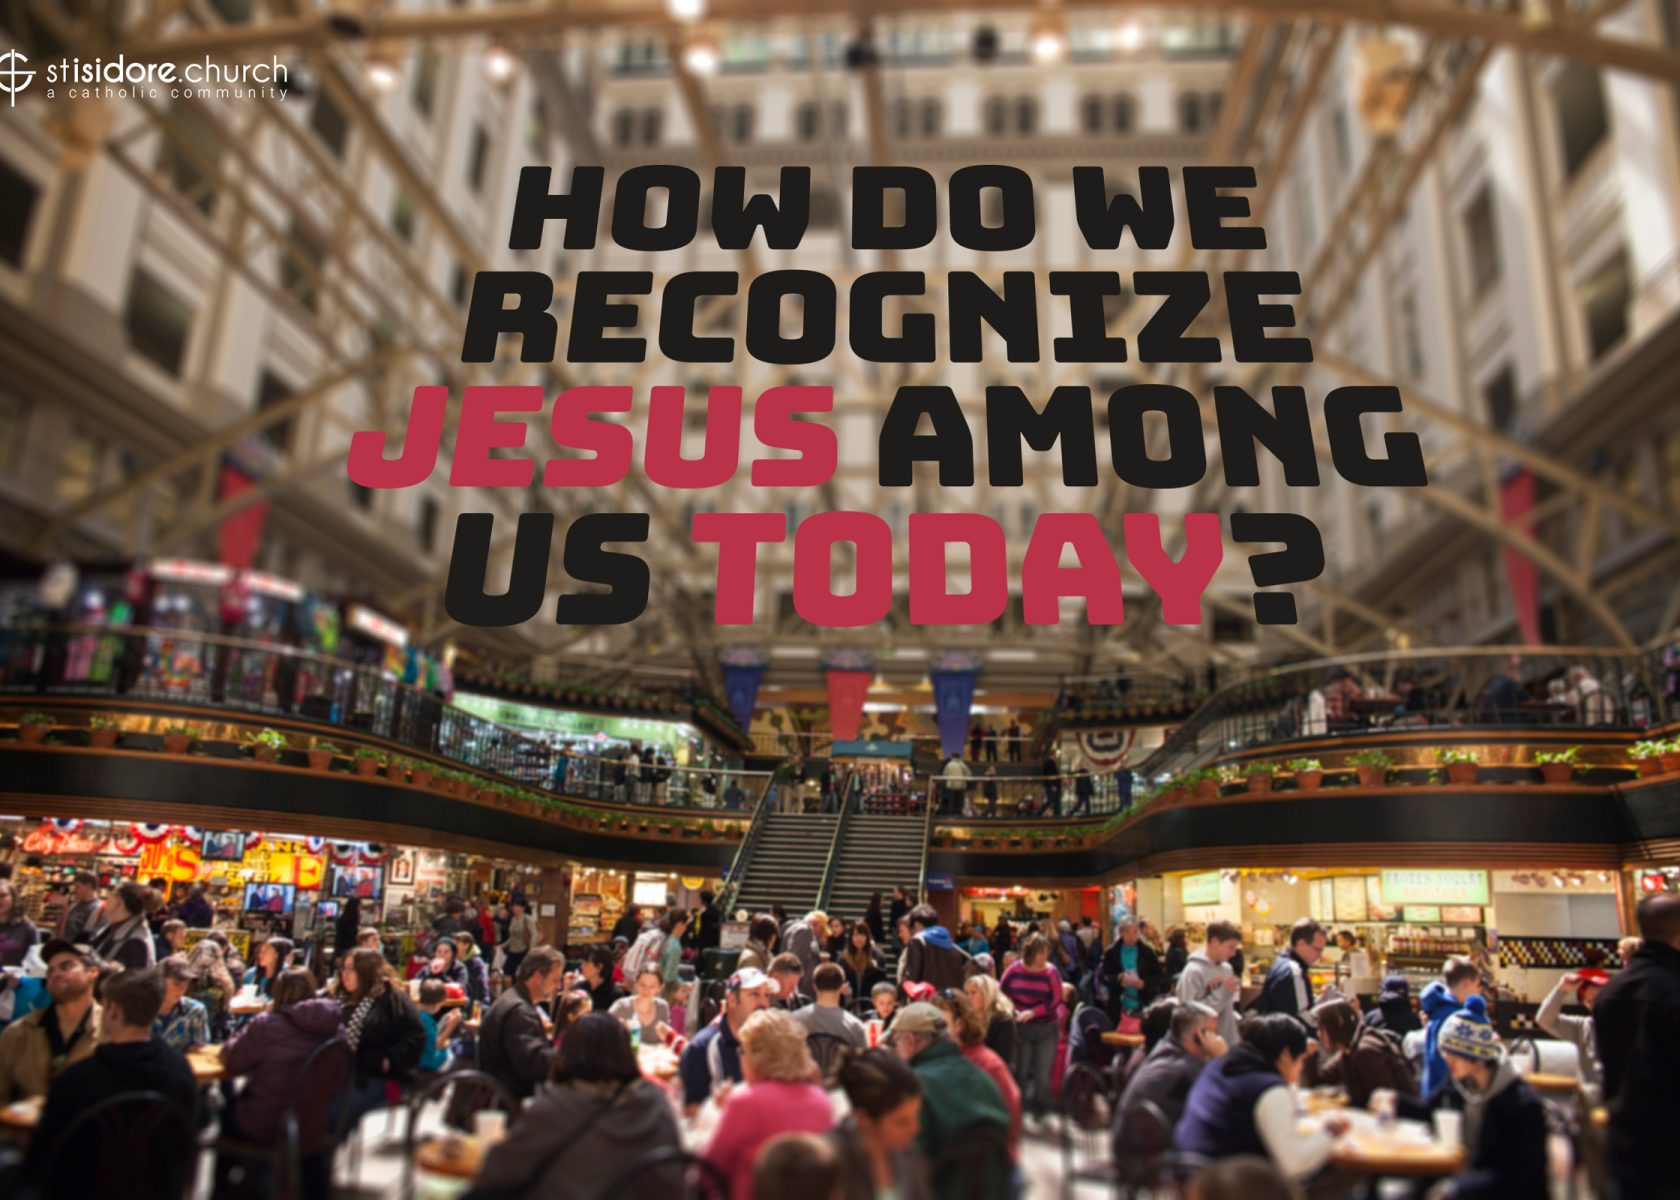 How do we recognize Jesus among us today?